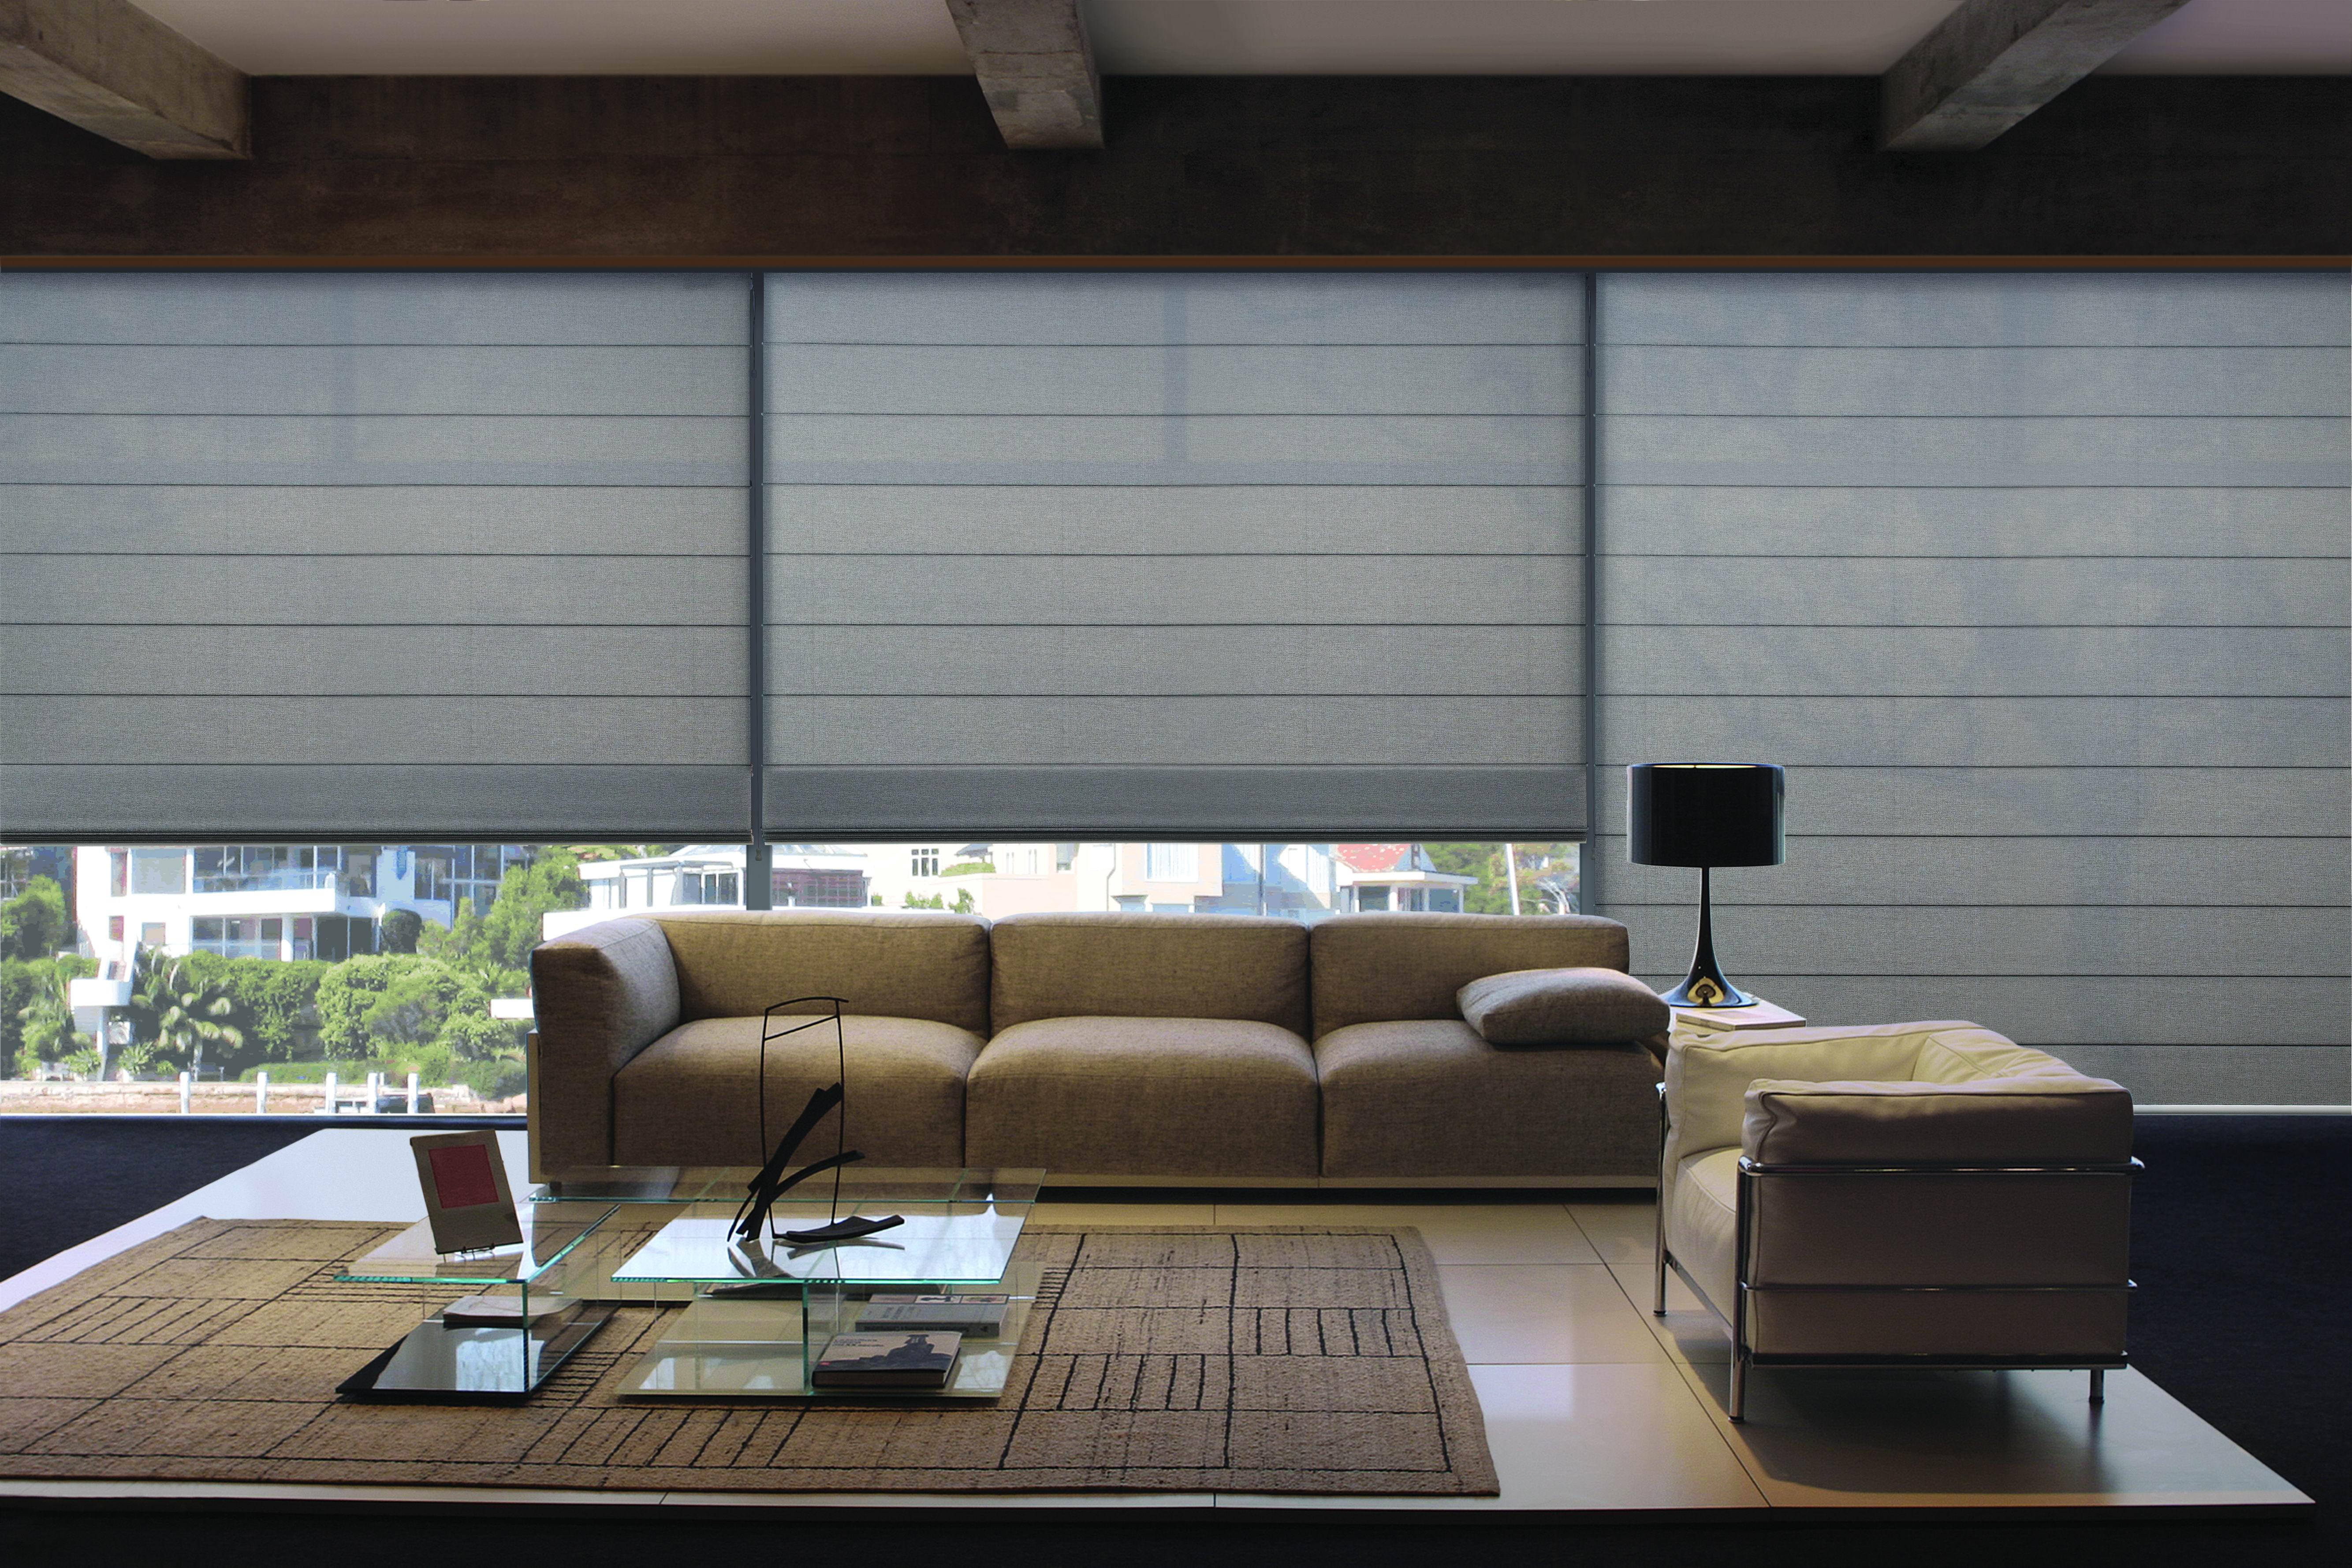 Contemporary Roman Blinds in Translucent Fabric.Jpeg